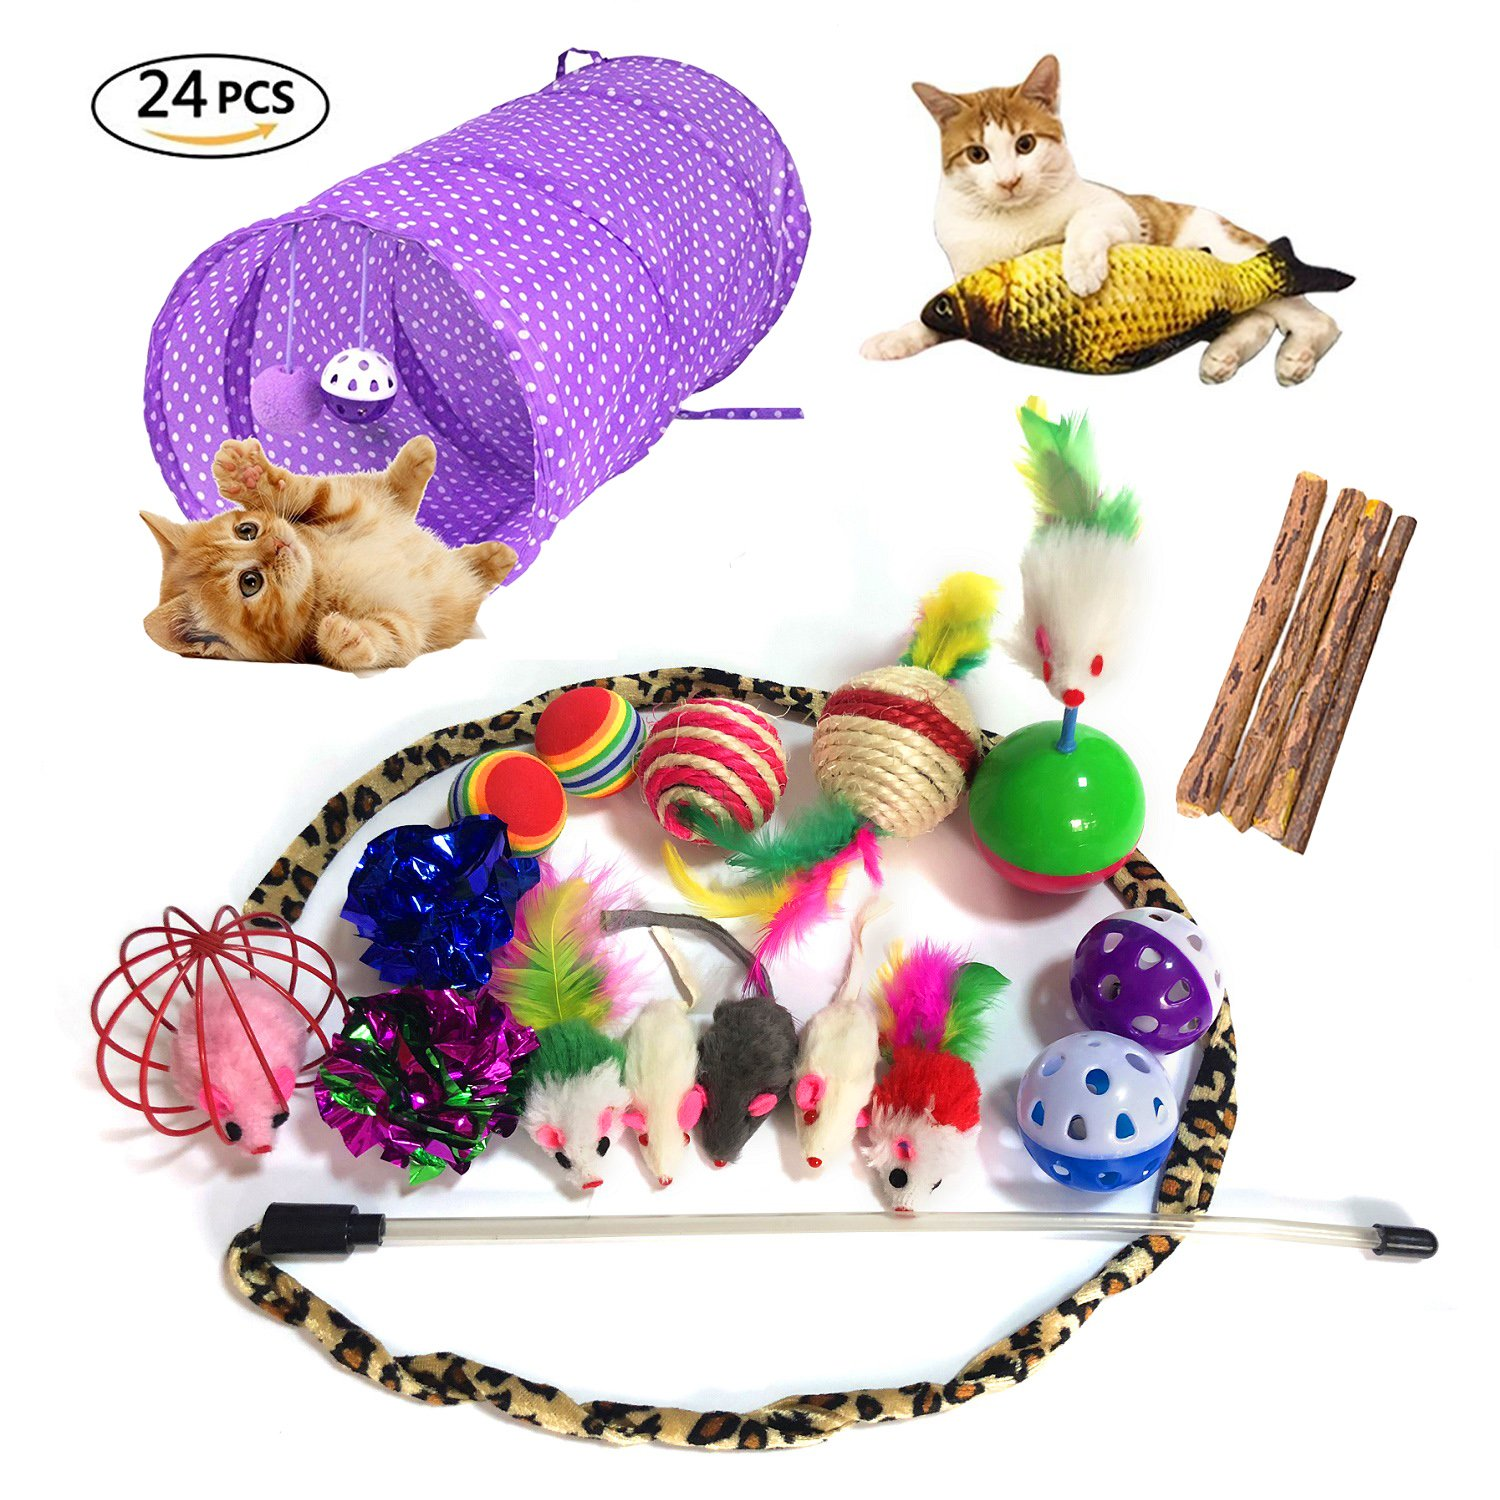 NLSD 24PCS Cat Toys Kitten Toys Assortments,Variety Pack for Catnip Toy, Cat Tunnel, Bell Crinkle Balls, Feather Wand, Cat Teaser Toy, Cat Toys Set for Cat, Puppy, Kitty, Kitten